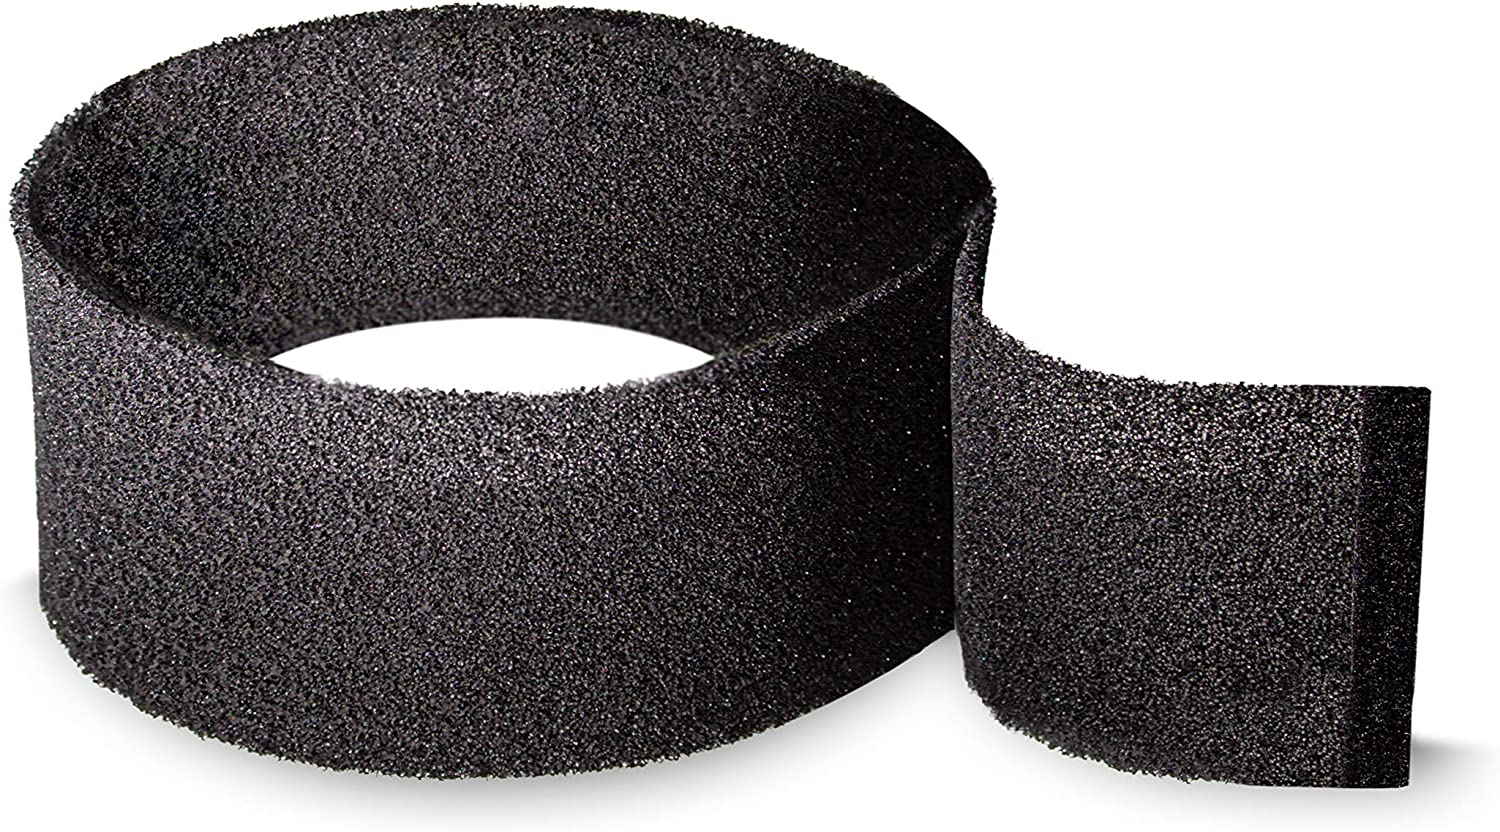 LifeSupplyUSA 3-Pack Carbon Filter Replacement Layers Compatible with TruSens AFCZ1000-01 fits TruSens Z-1000 Small Air Purifier